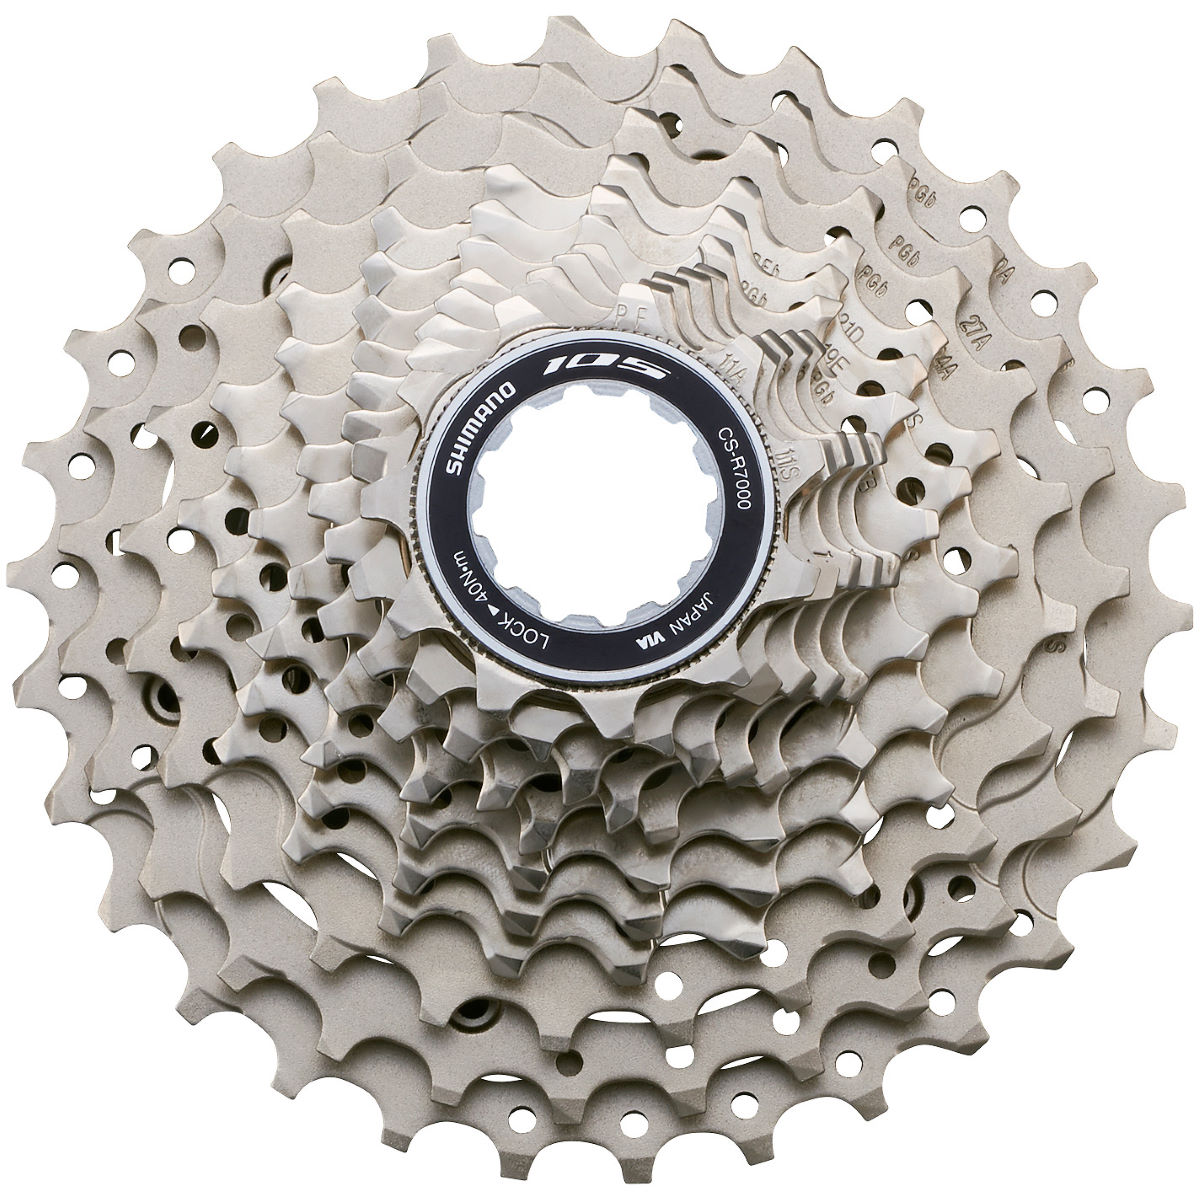 Shimano 105 R7000 11 Speed Cassette - 11-32t Silver  Cassettes